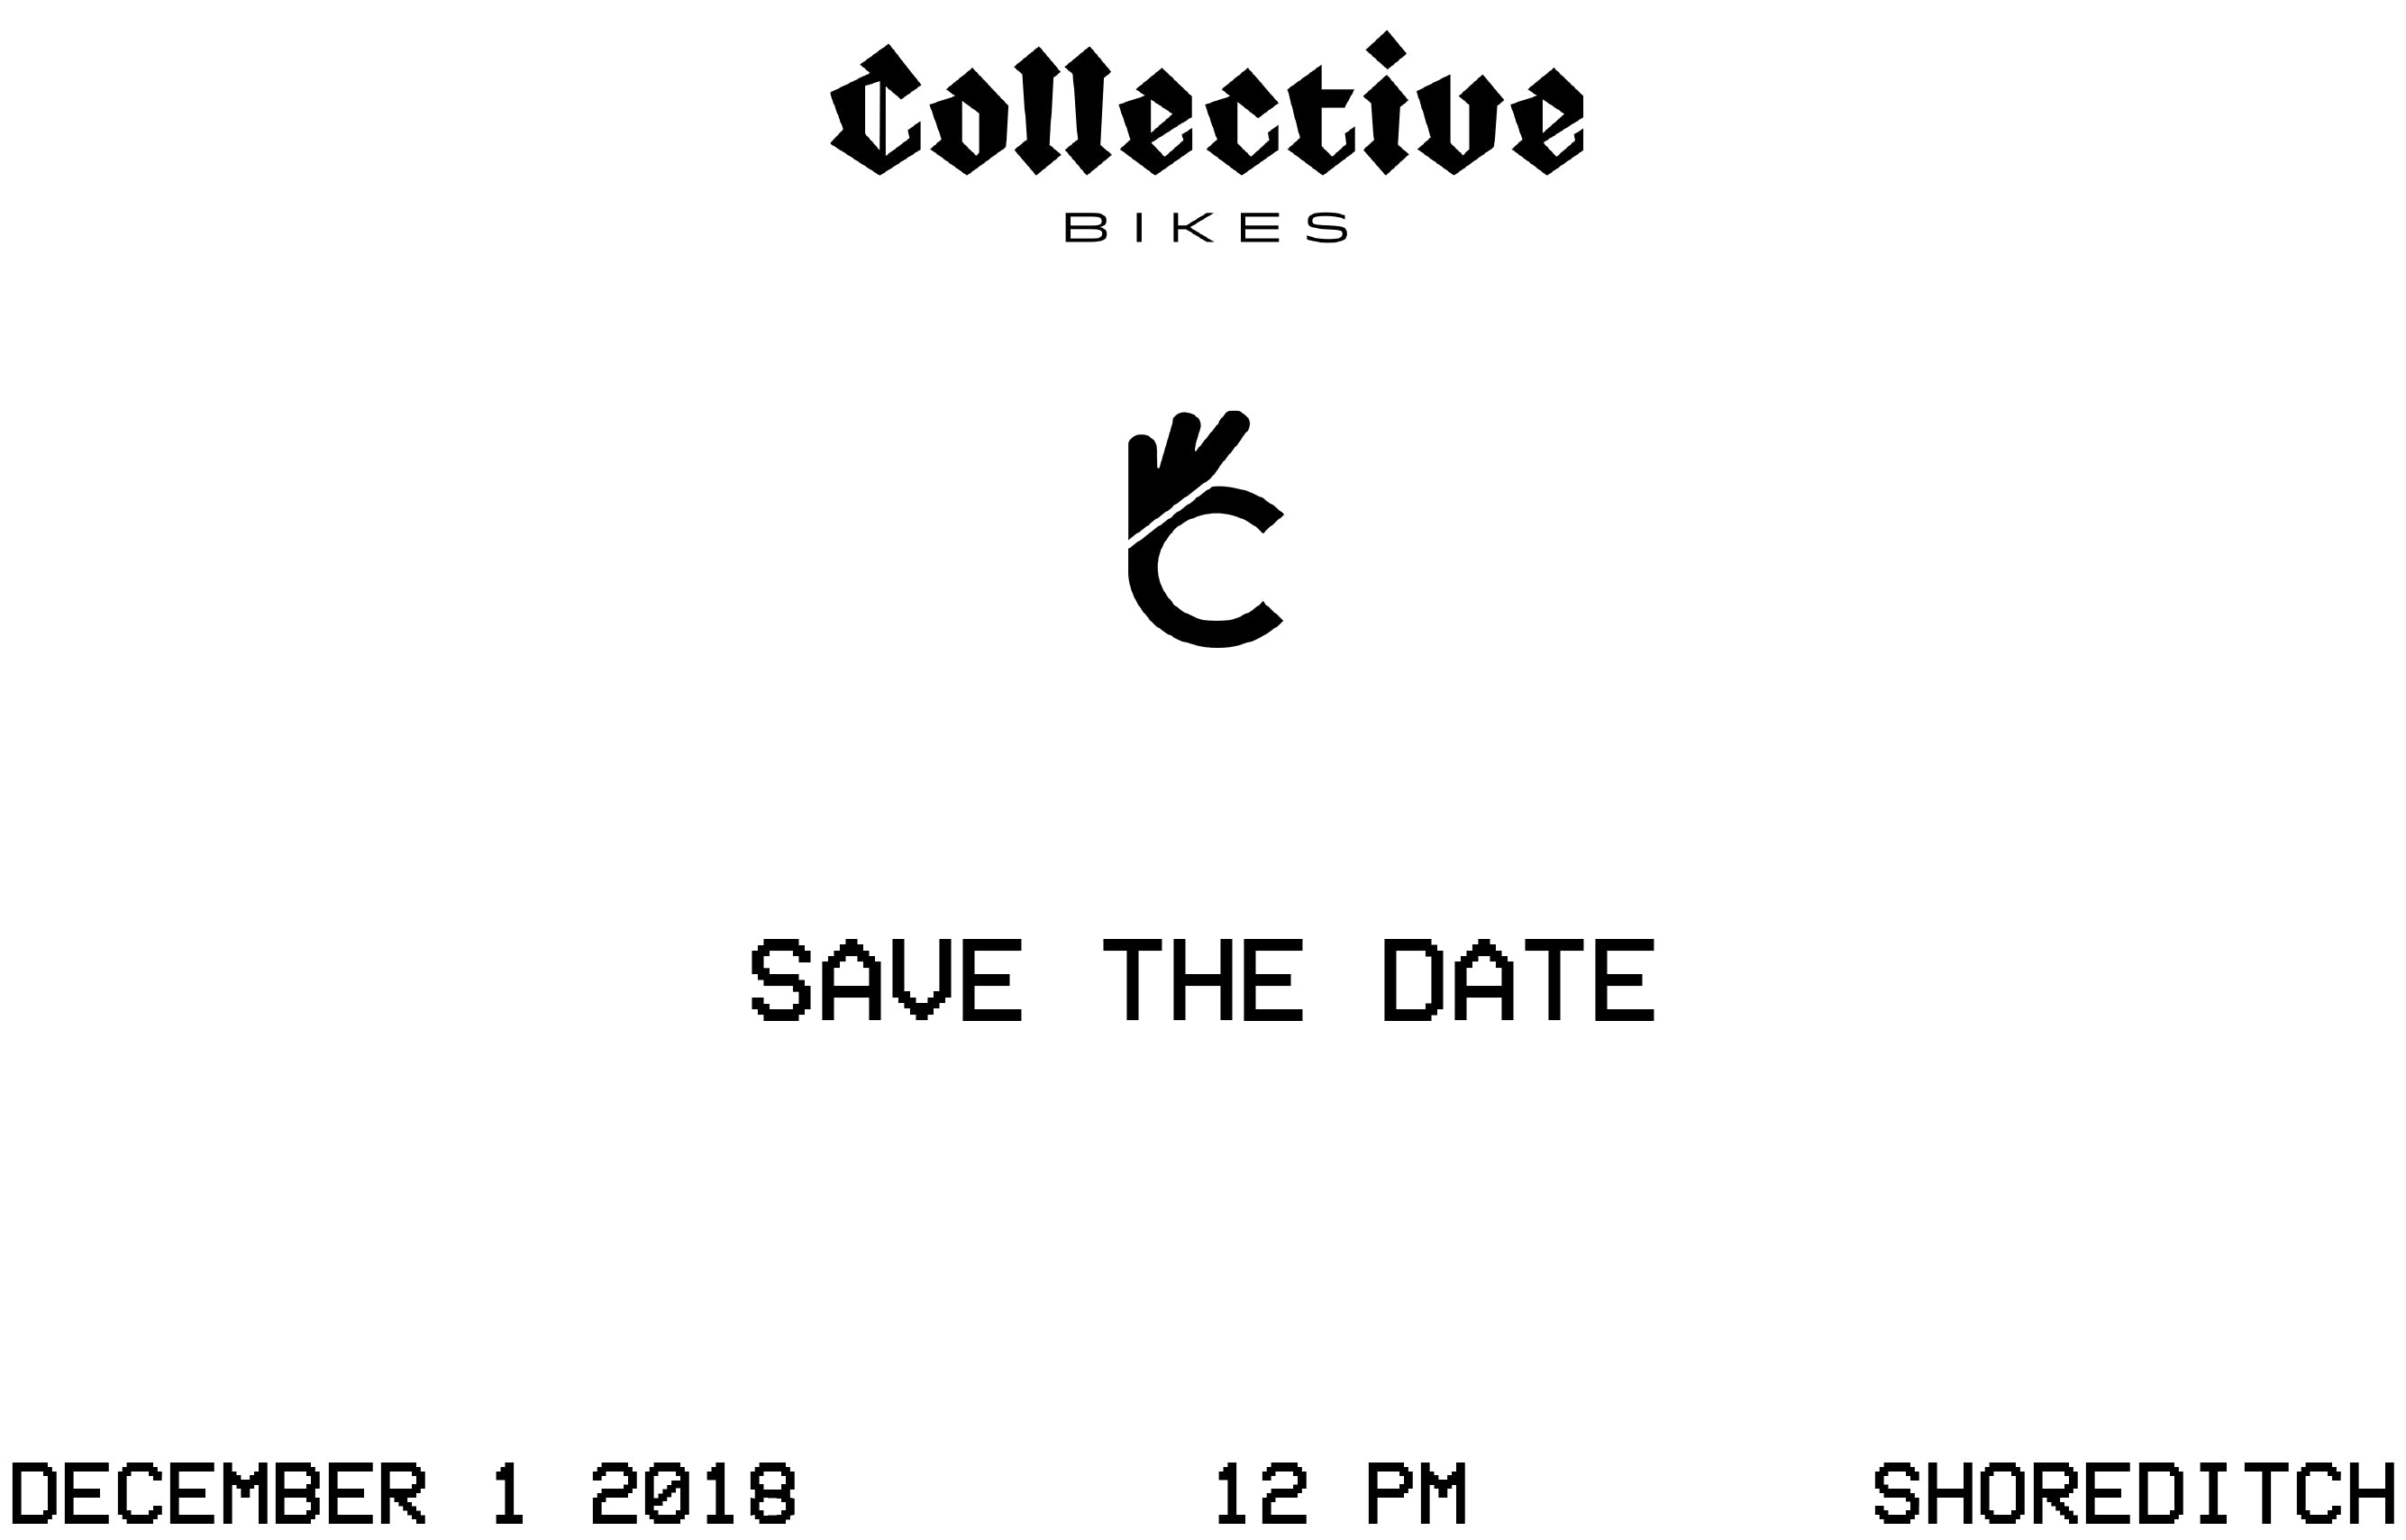 COLLECTIVE BIKES EVENT - DECEMBER 1ST